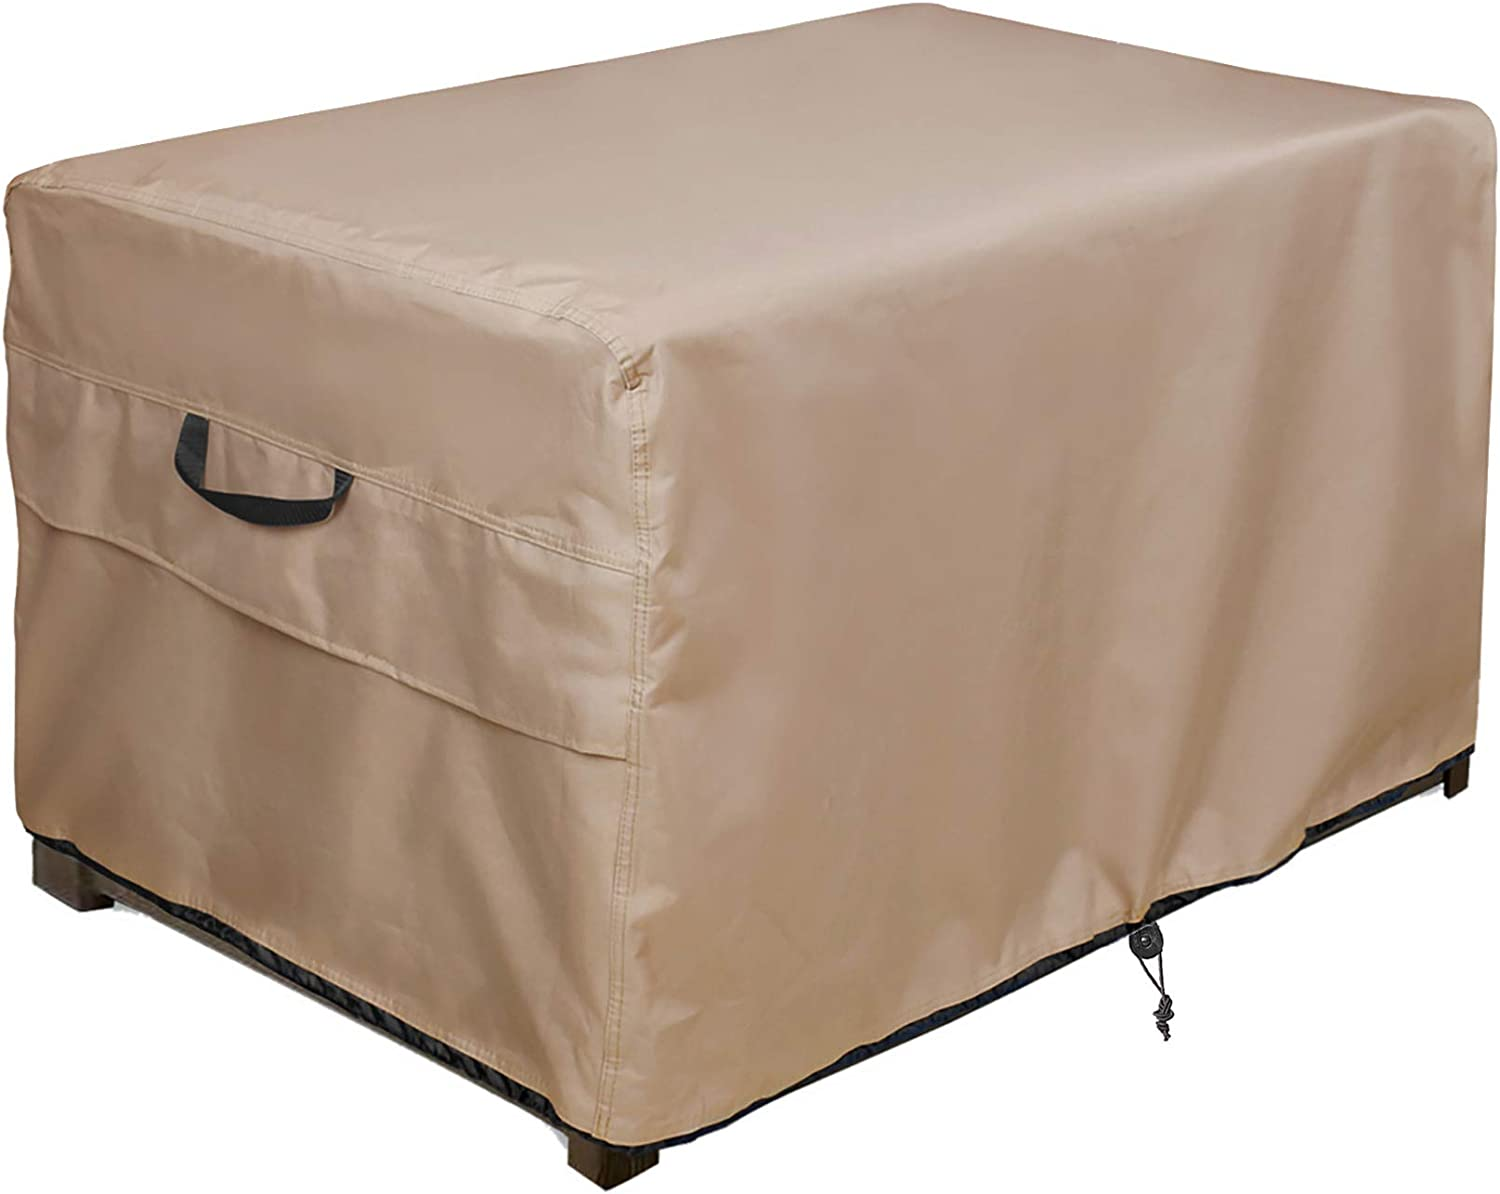 ULTCOVER Patio Department store Deck Box Storage Bench Waterproof Portland Mall - Outdoor Cover